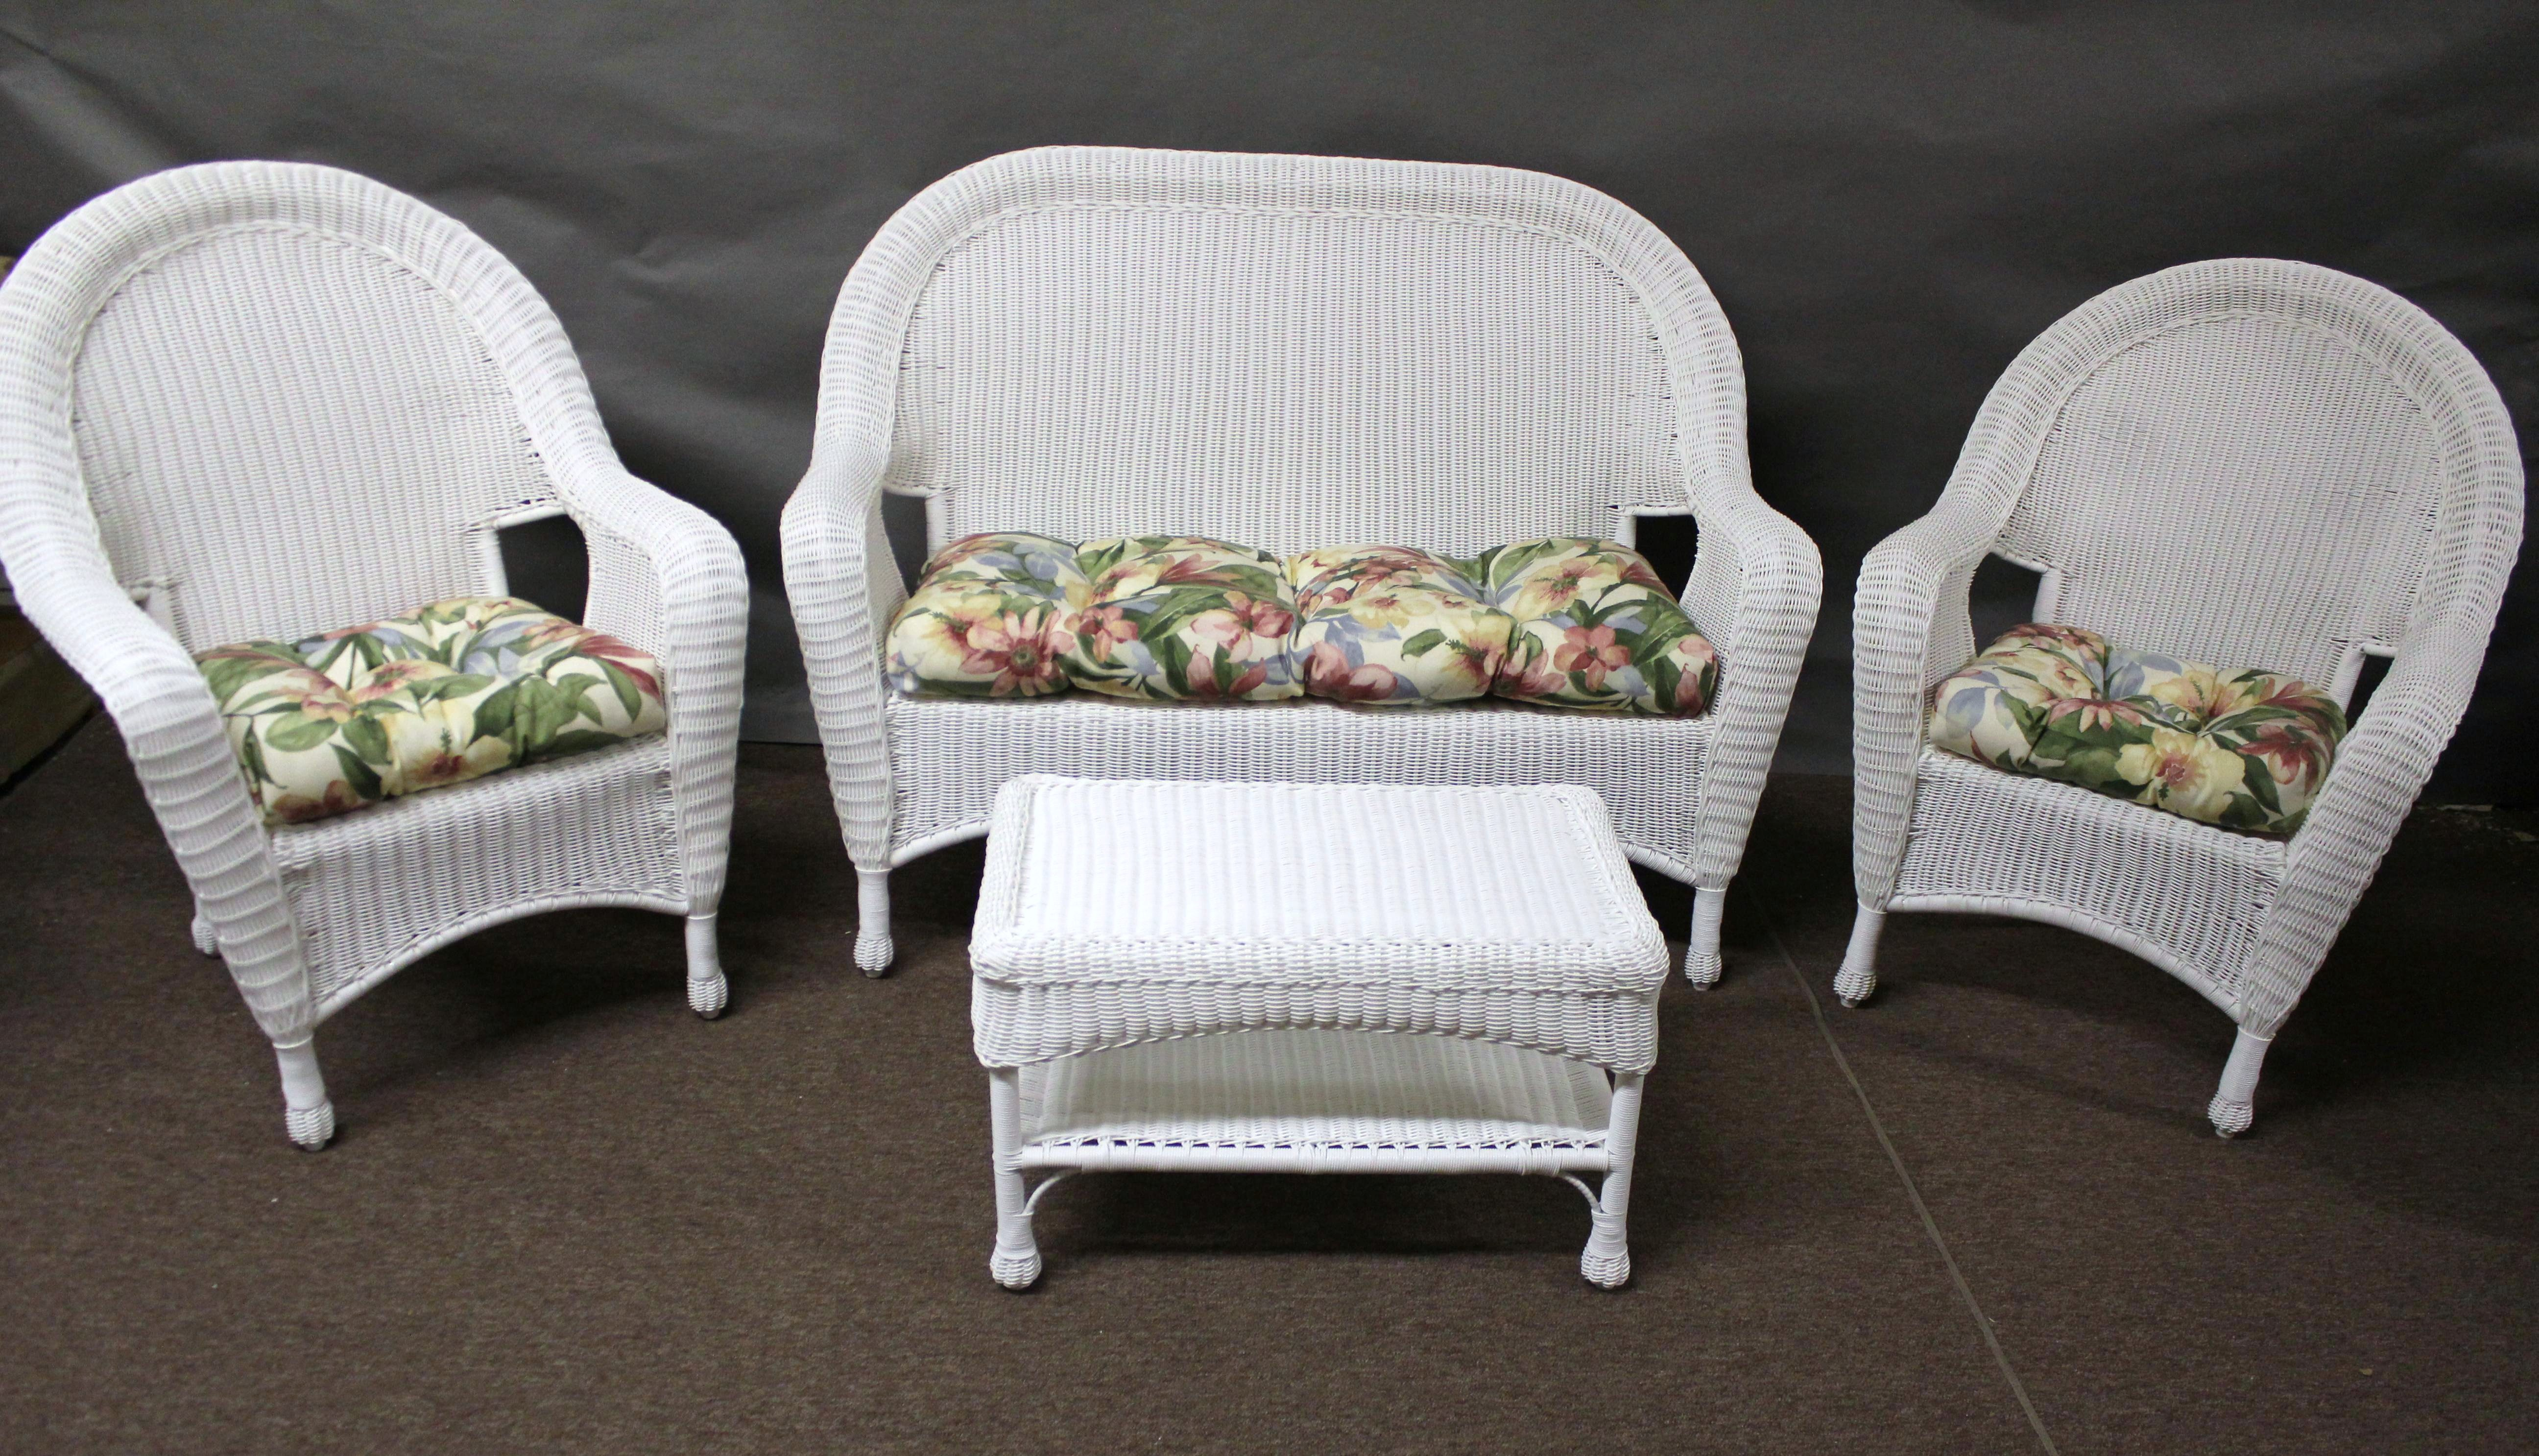 outdoor wicker furniture cushions photo - 4